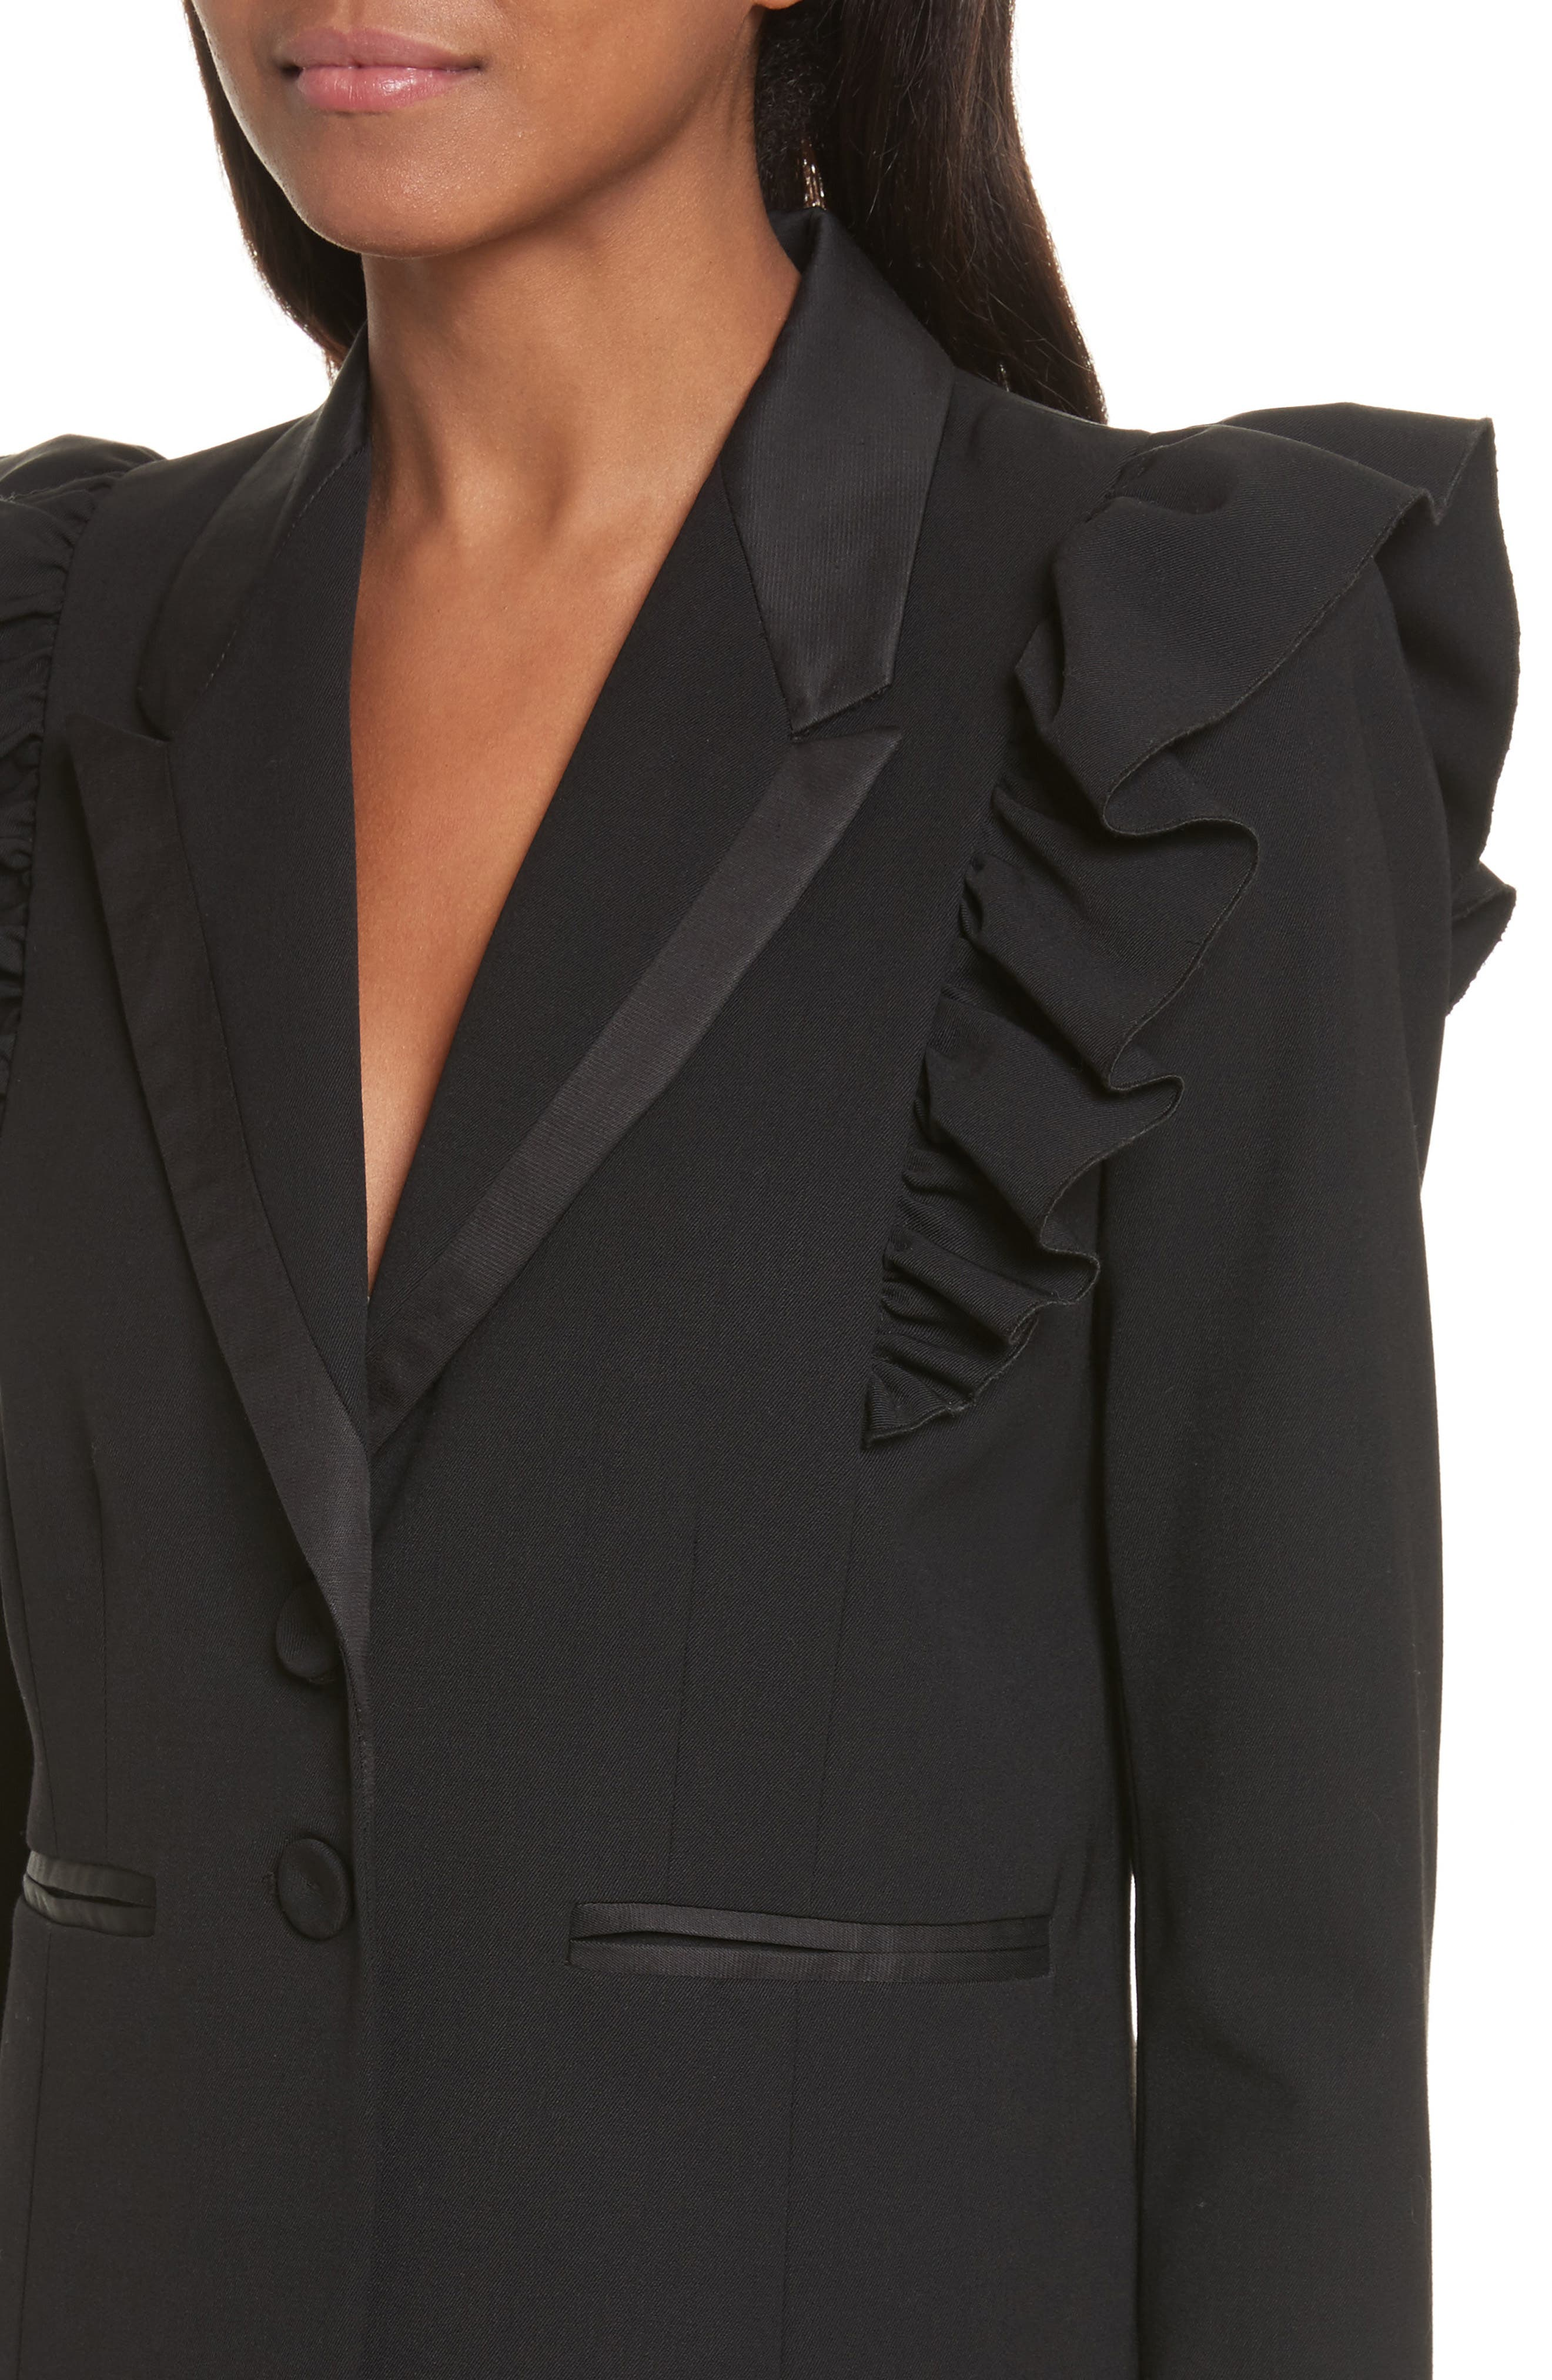 Ruffle Stretch Wool Jacket,                             Alternate thumbnail 4, color,                             Black